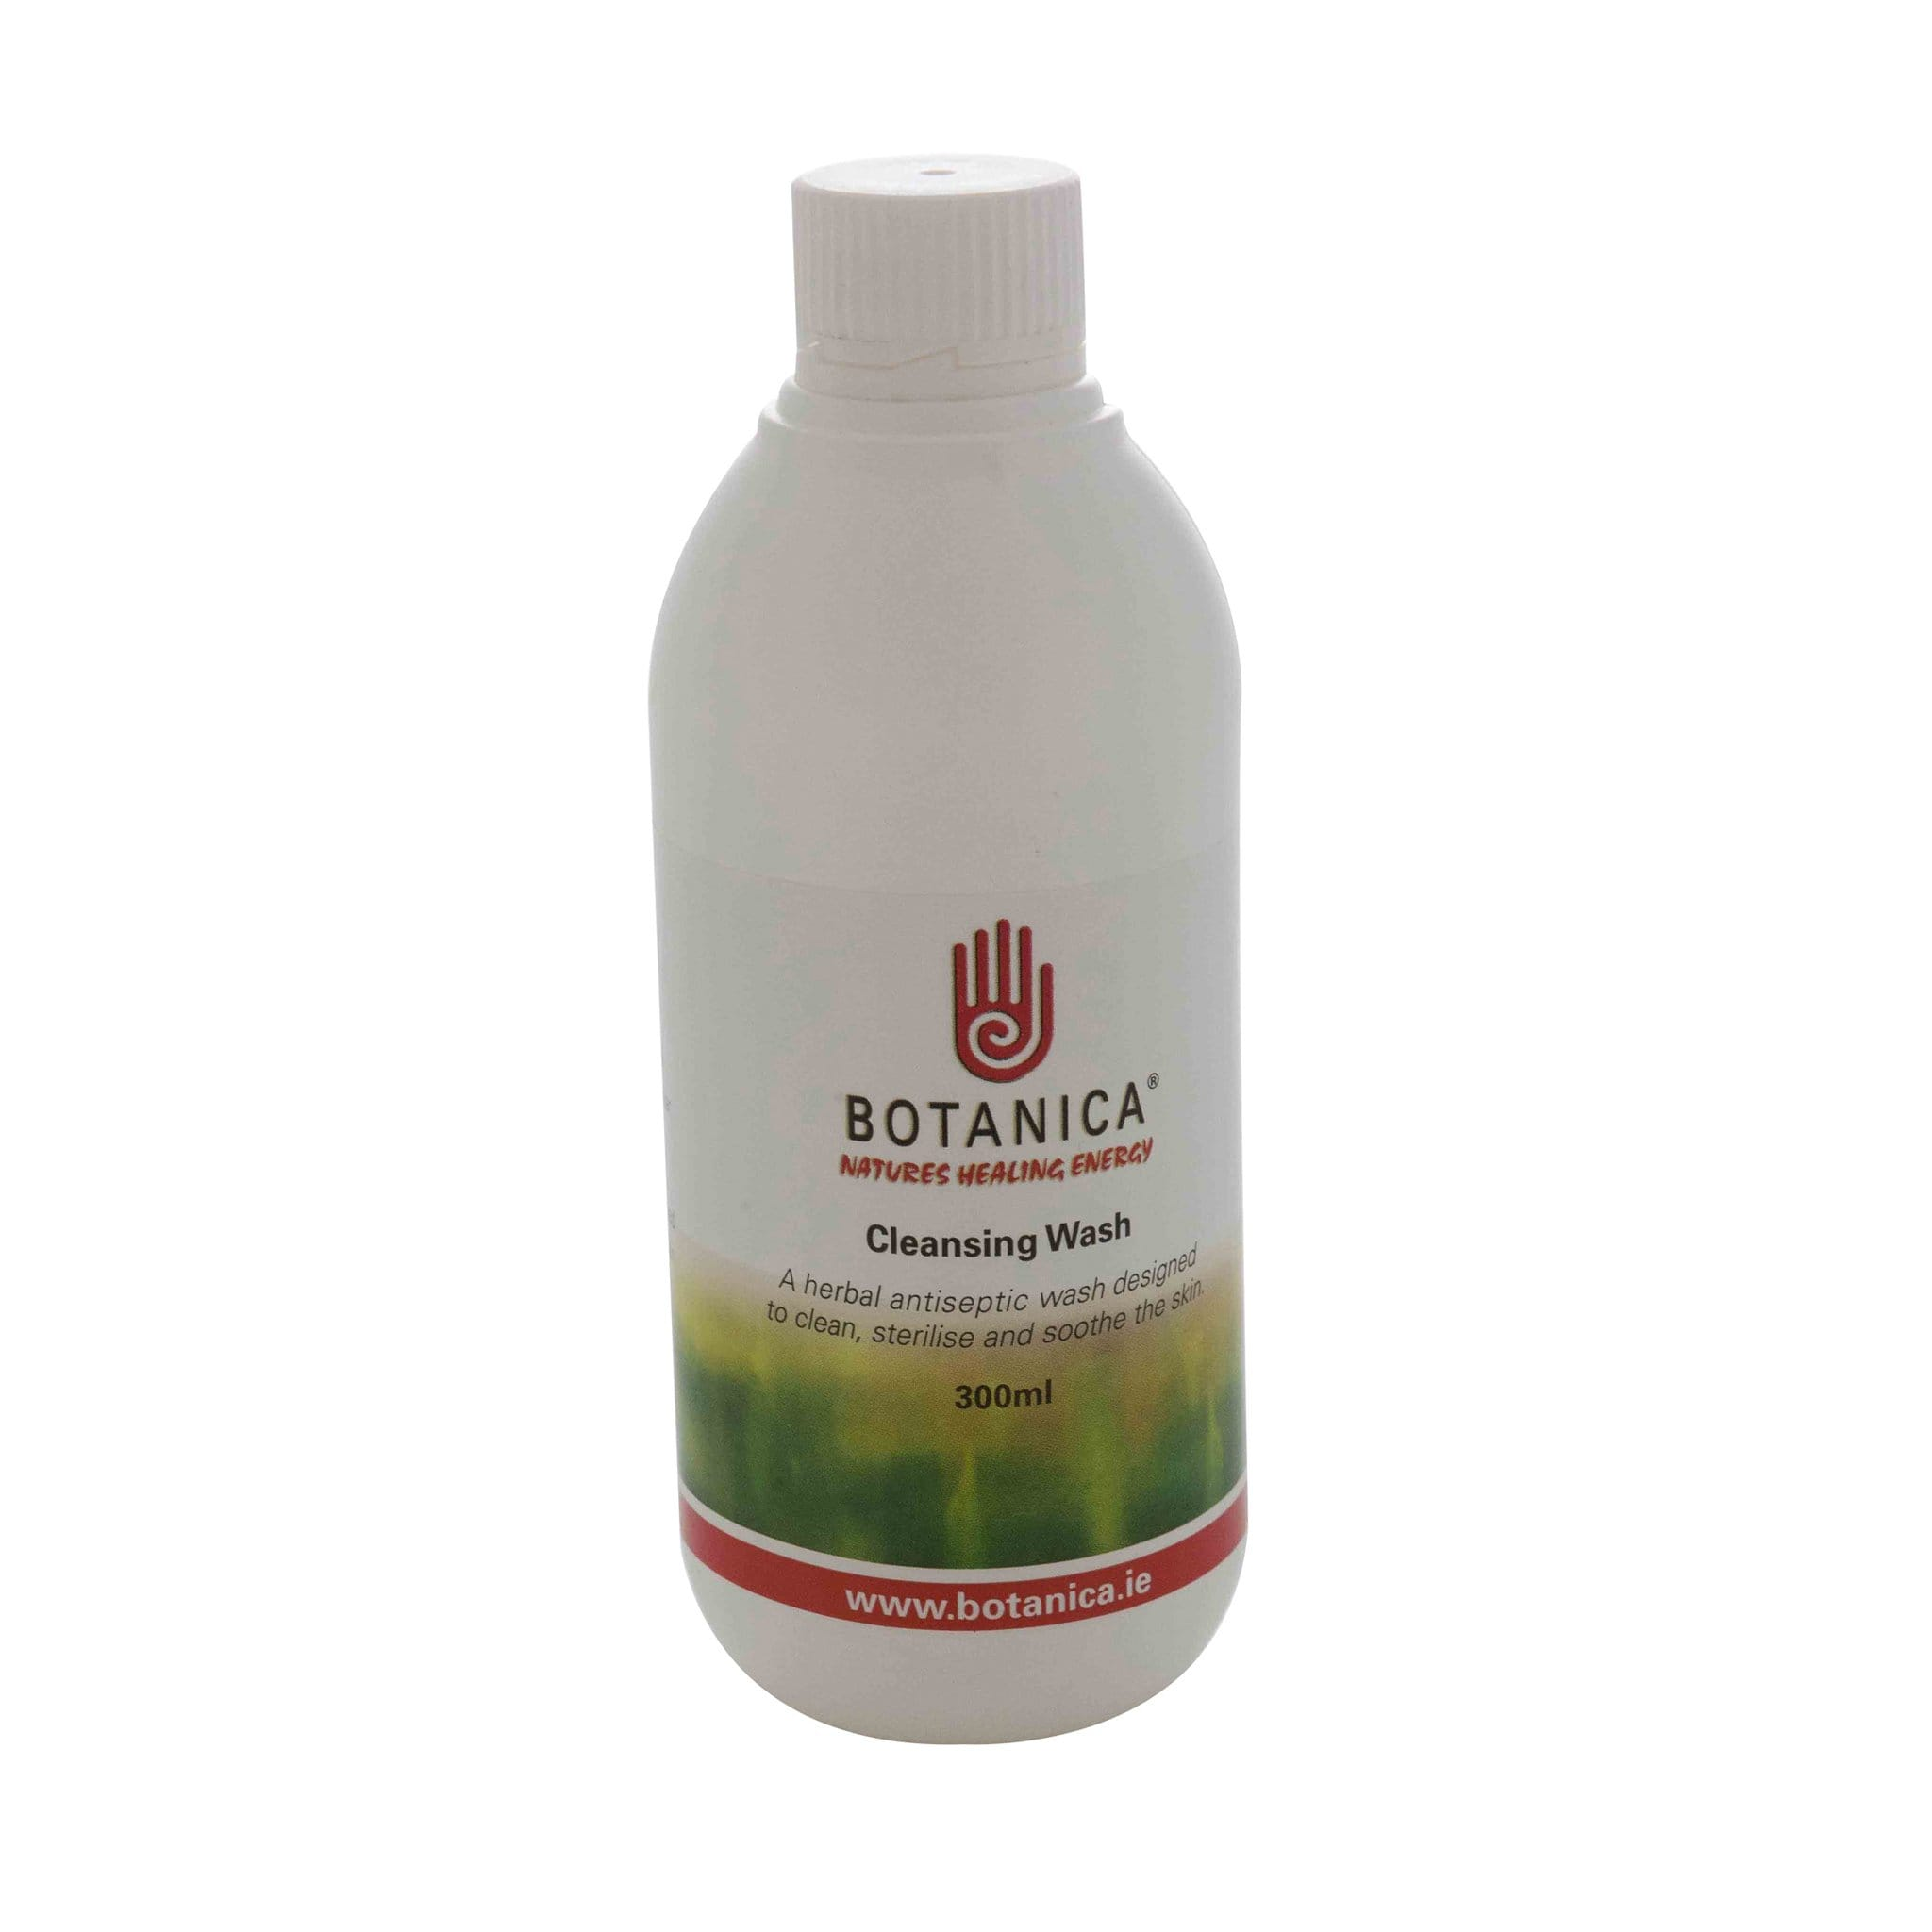 Botanica Cleansing Wash 300ml BOT0030